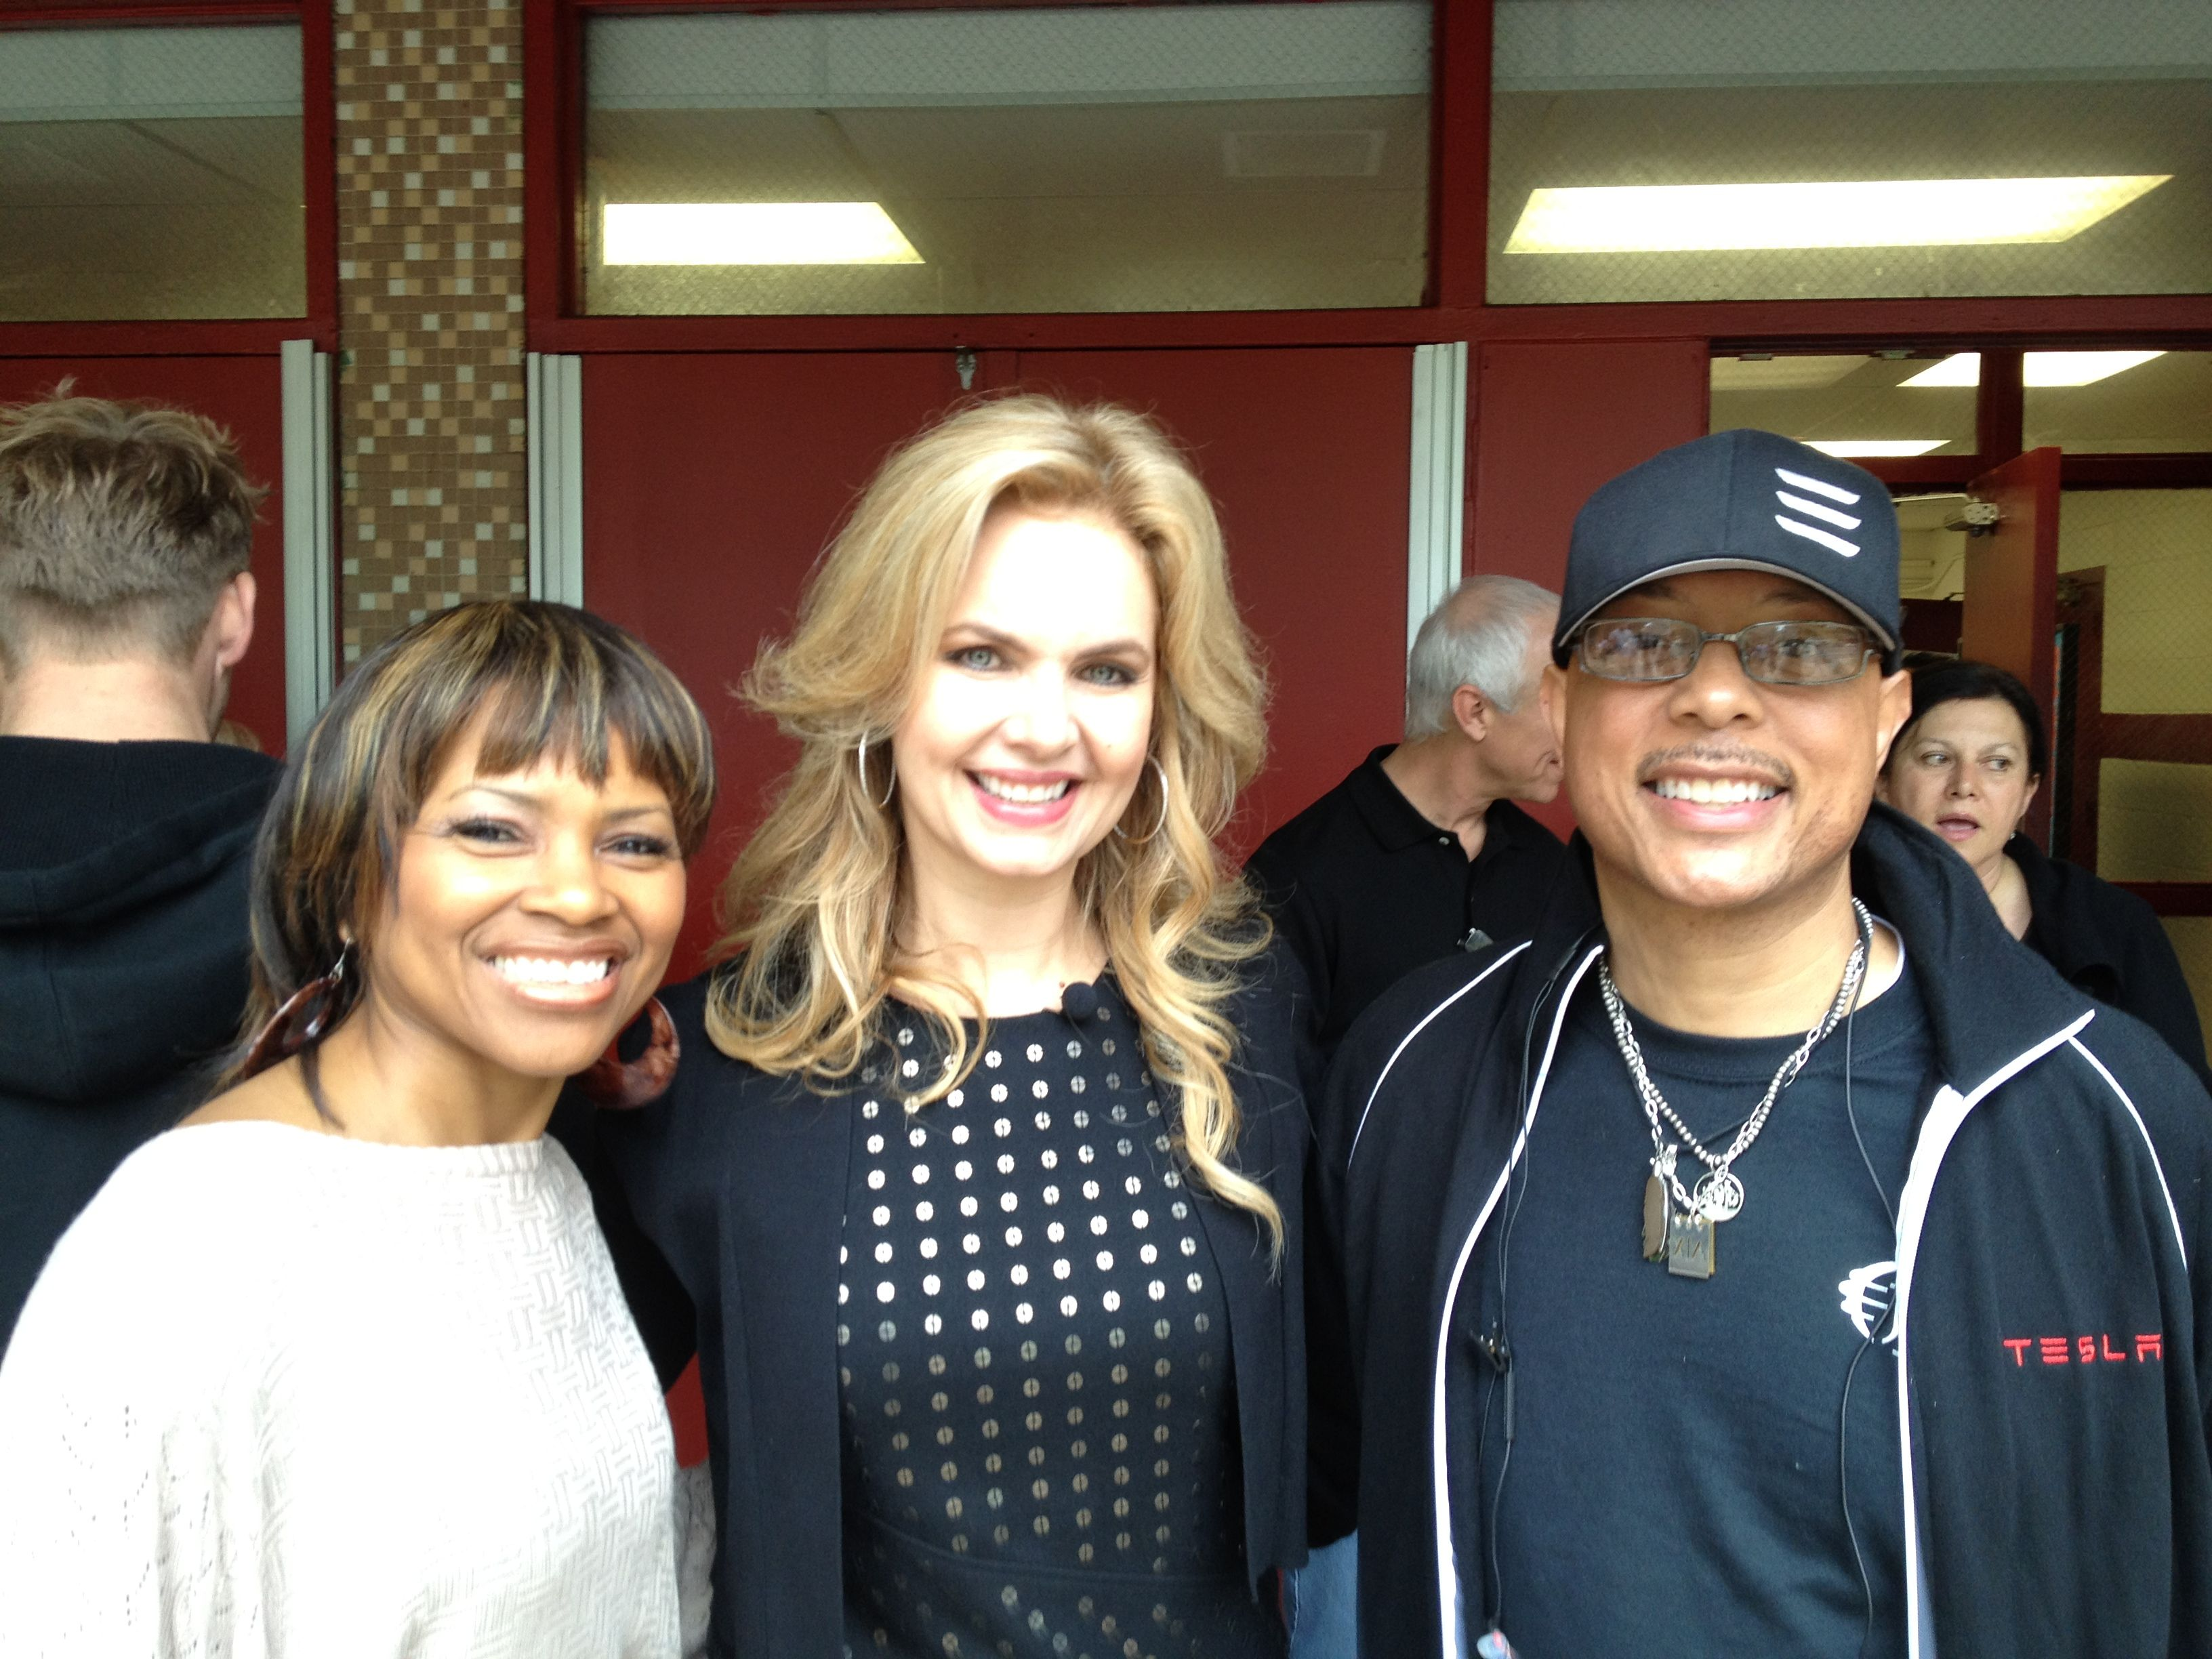 Victoria Osteen, Carla, and I @ Generation Hope Project in Washington, D.C.